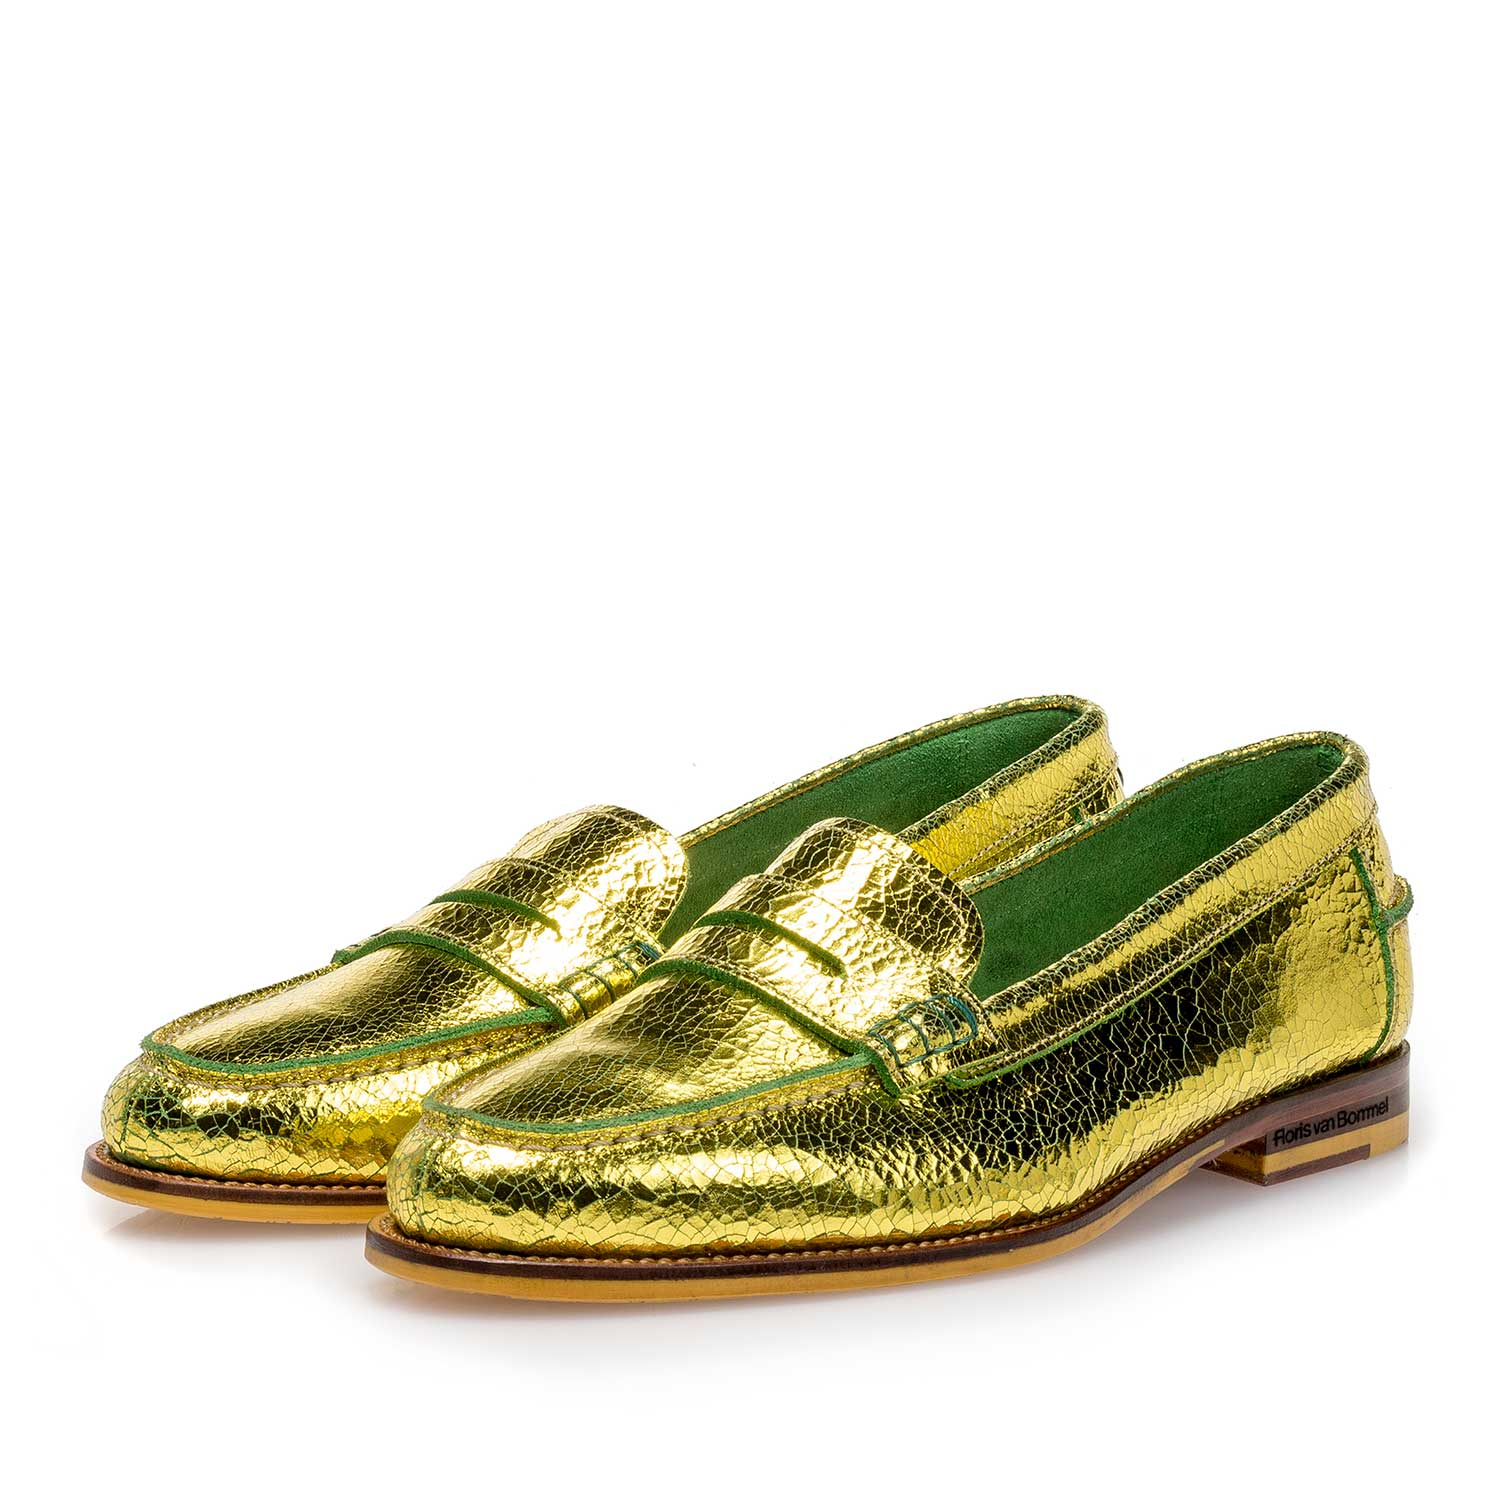 85409/09 - Yellow metallic leather loafer with craquelé effect